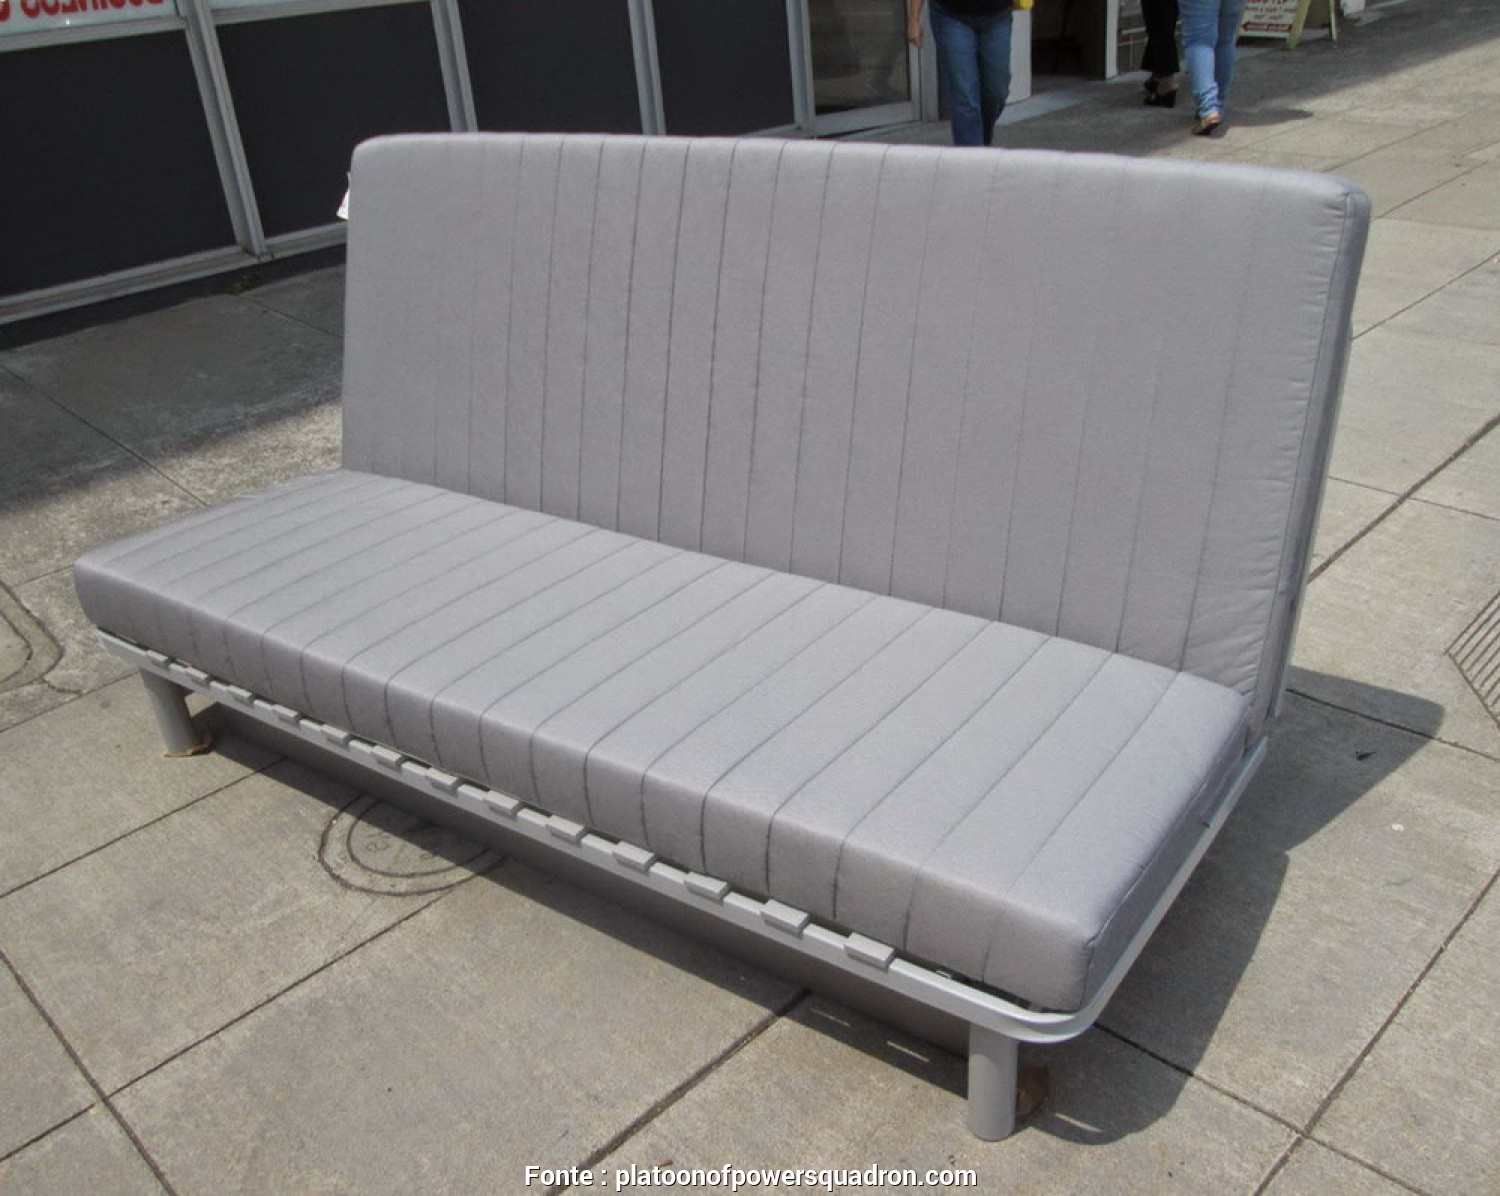 Futon Slipcover Ikea, A Buon Mercato Furniture: Choose Your Best Futons Ikea Style That Suits Your